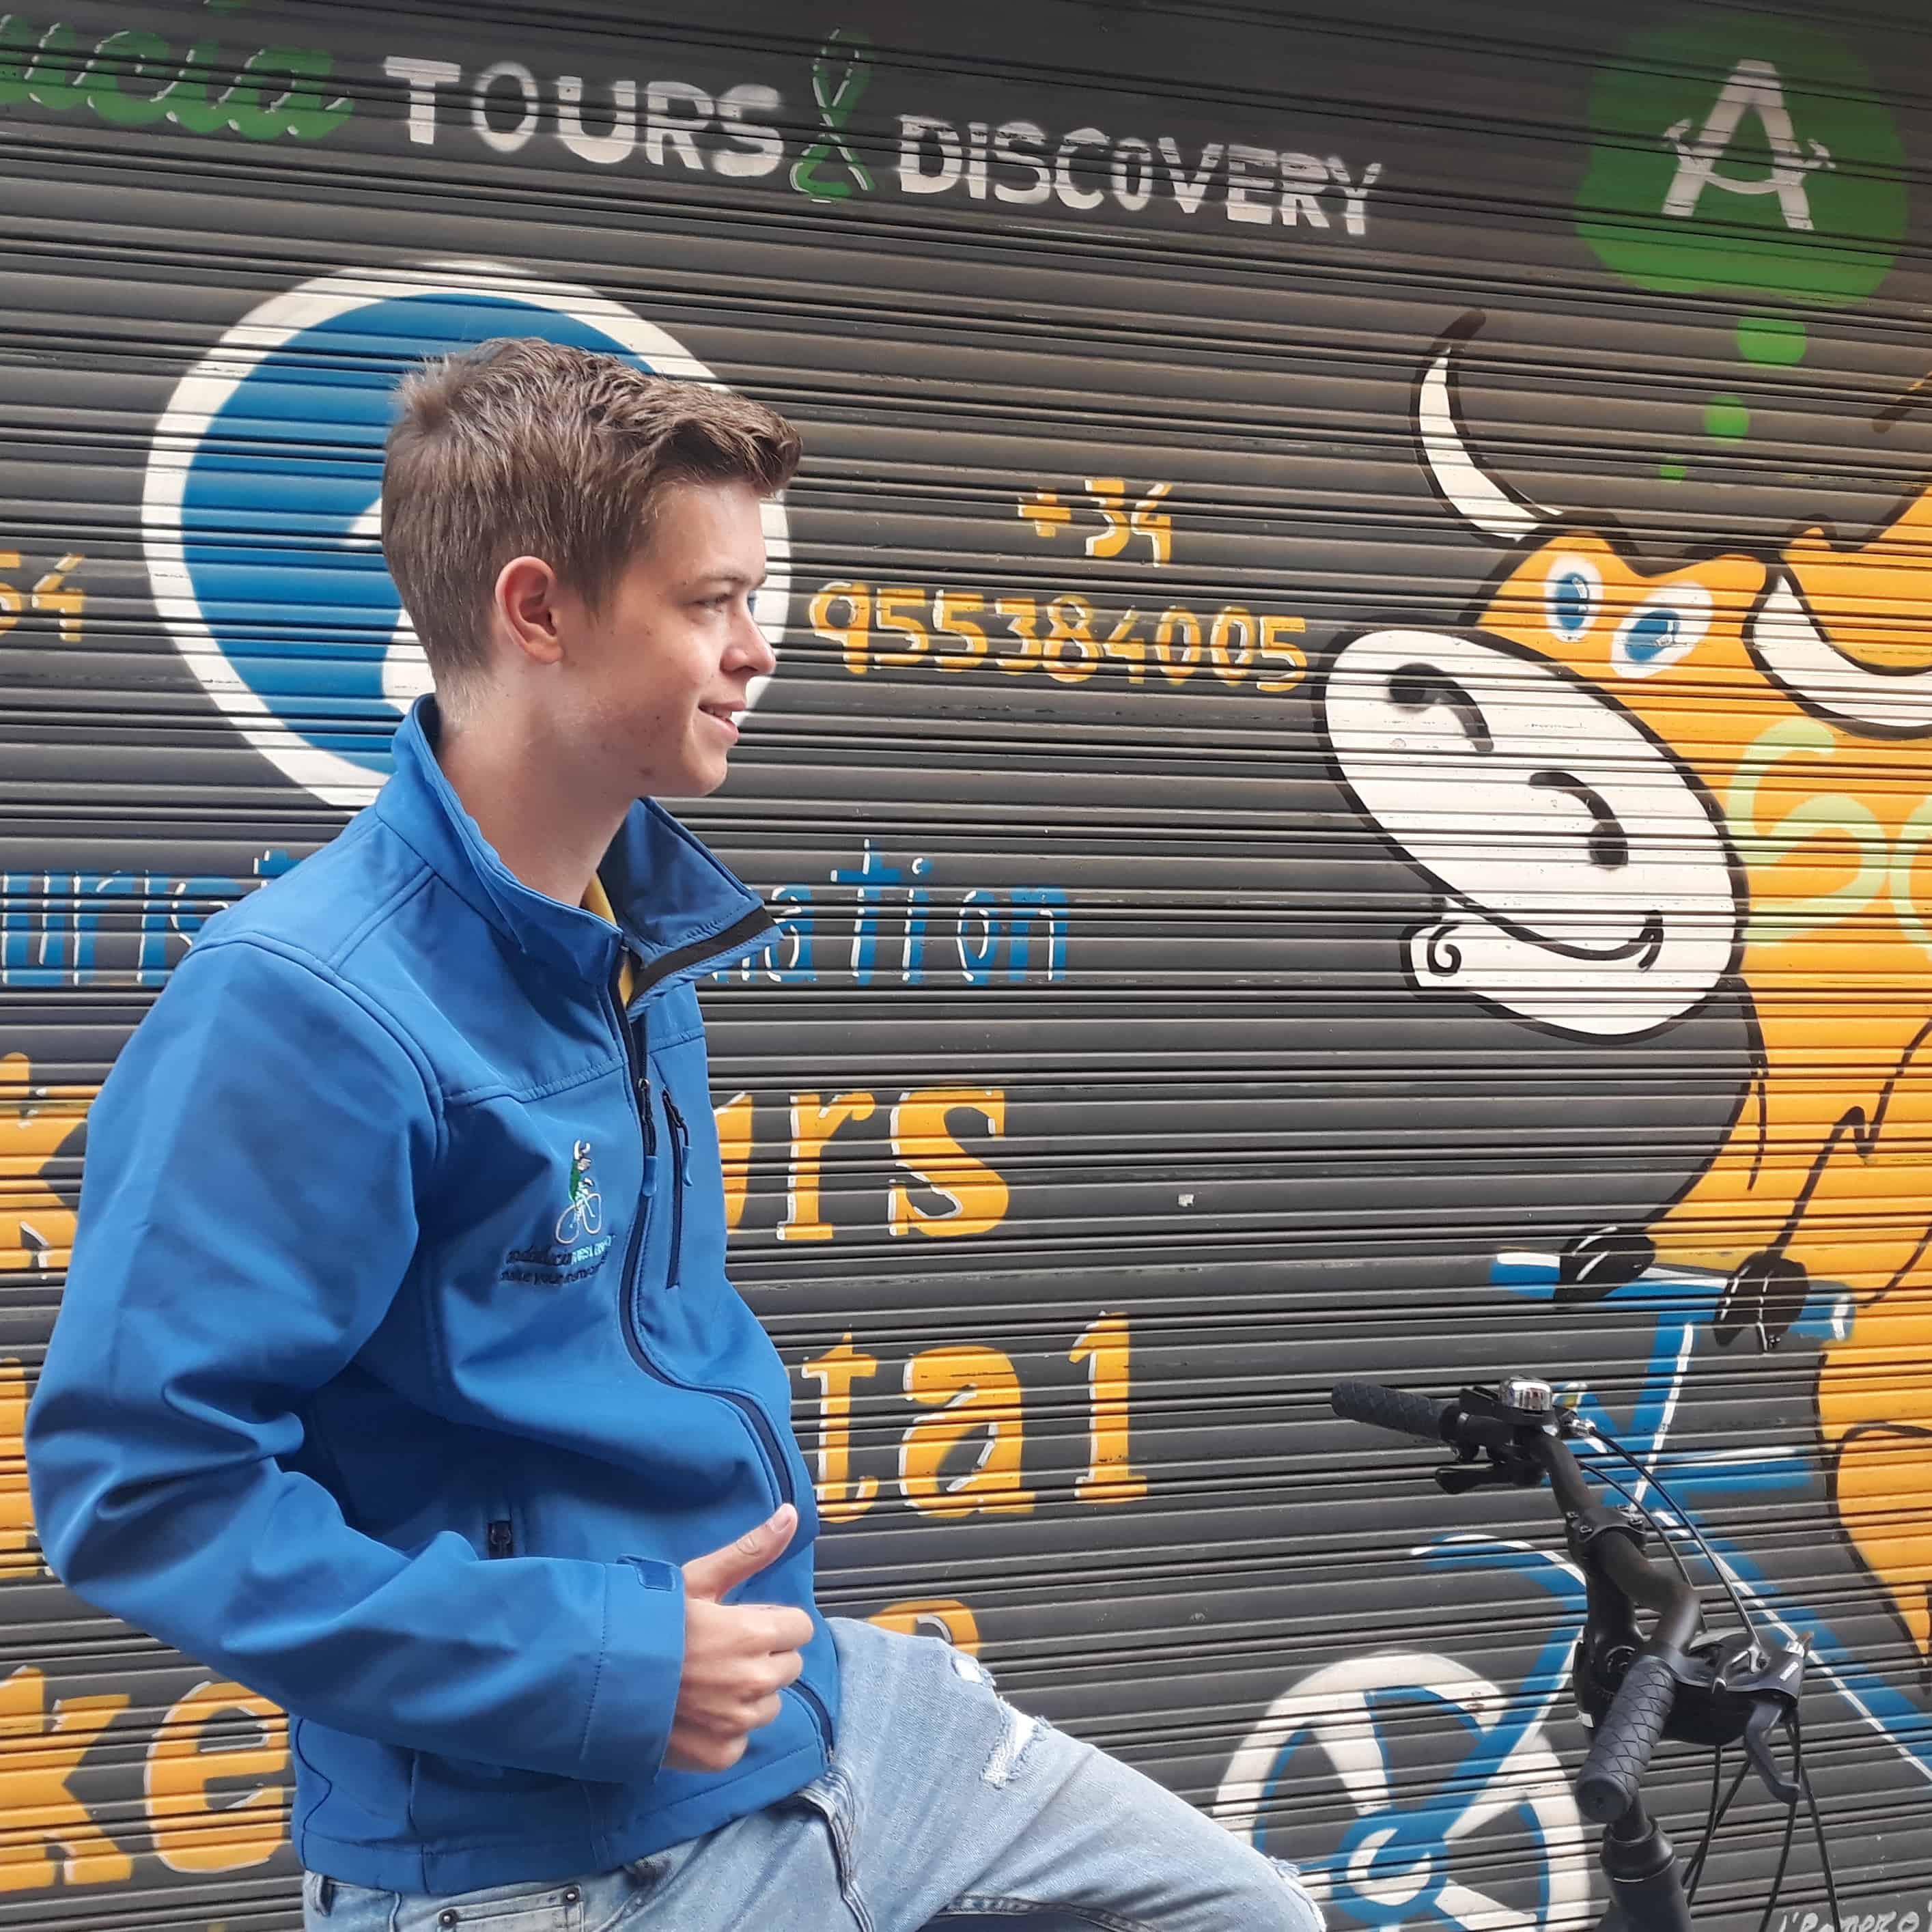 Lars on his bike in front of the store